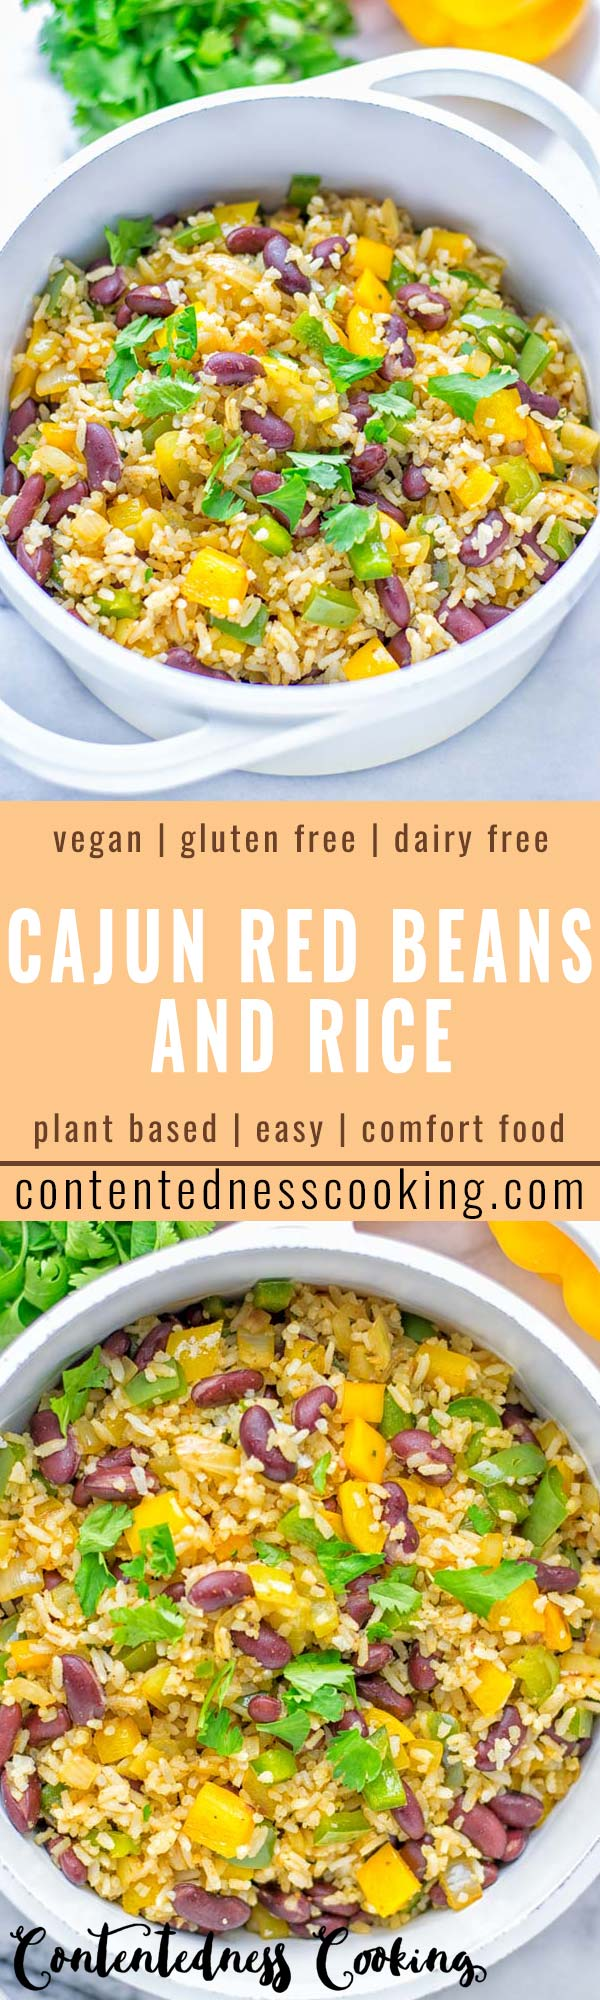 This Cajun Red Beans and Rice is an amazing one pot meal which is naturally vegan, gluten free. It's packed with bold and fantastic flavors the whole family will love for dinner, lunch, meal prep and work lunch and so much more. Once you've tried this you can't stop eating it so easy to make! #vegan #dairyfree #glutenfree #vegetarian #onepotmeals #dinner #lunch #worklunchideas #budgetmeals #contentednesscooking #cajunbeansandrice #mealprep